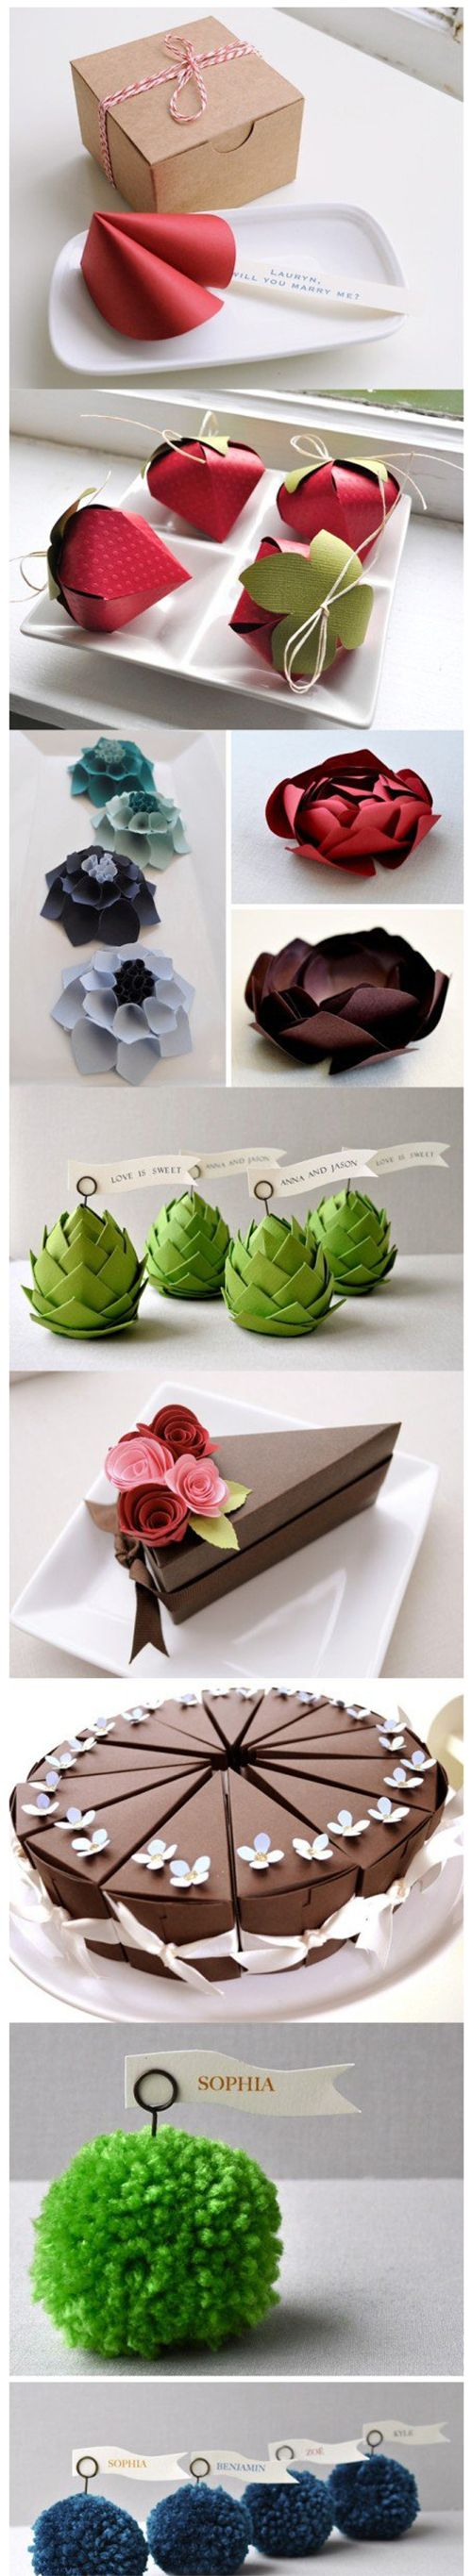 Great Paper Craft Ideas | DIY & Crafts Tutorials